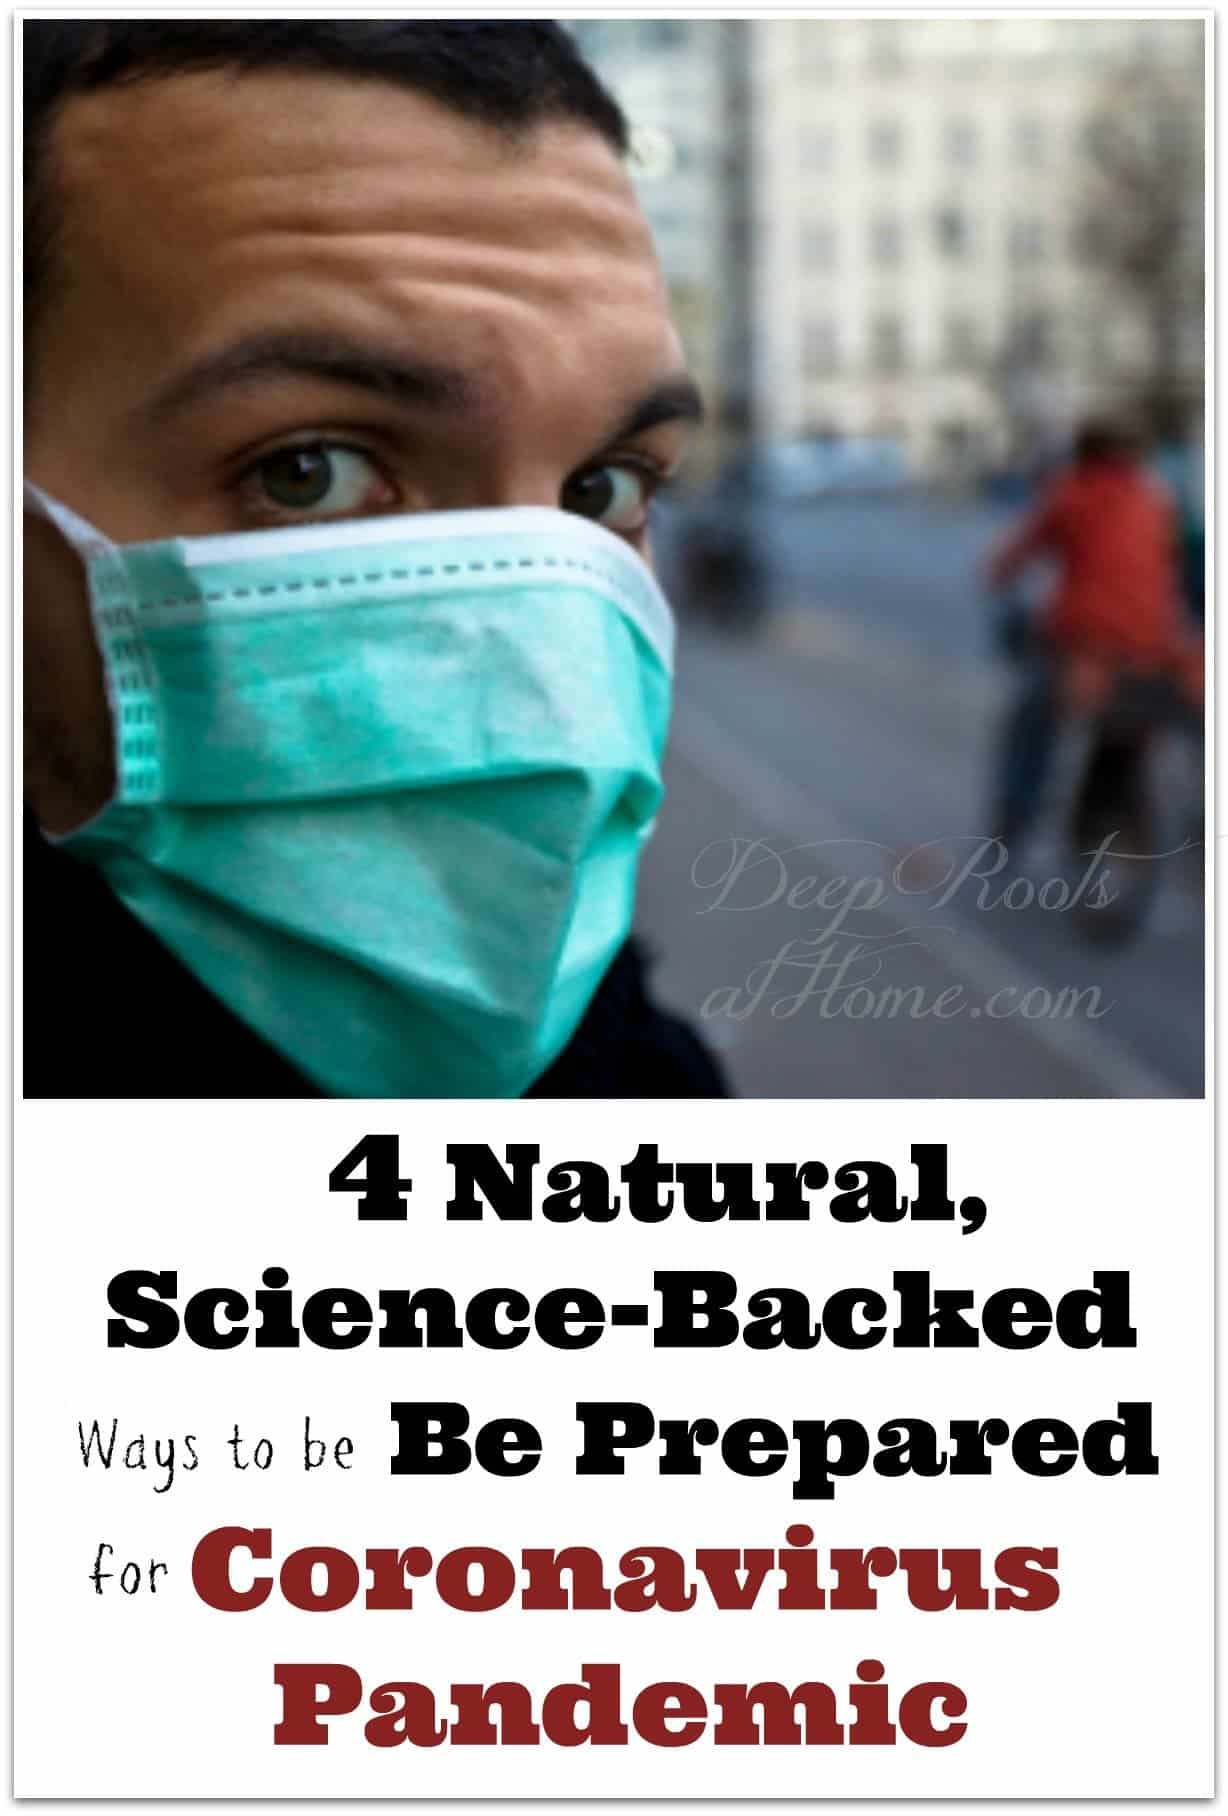 5 Natural, Science-Backed Ways to be Prepared for Coronavirus & Video